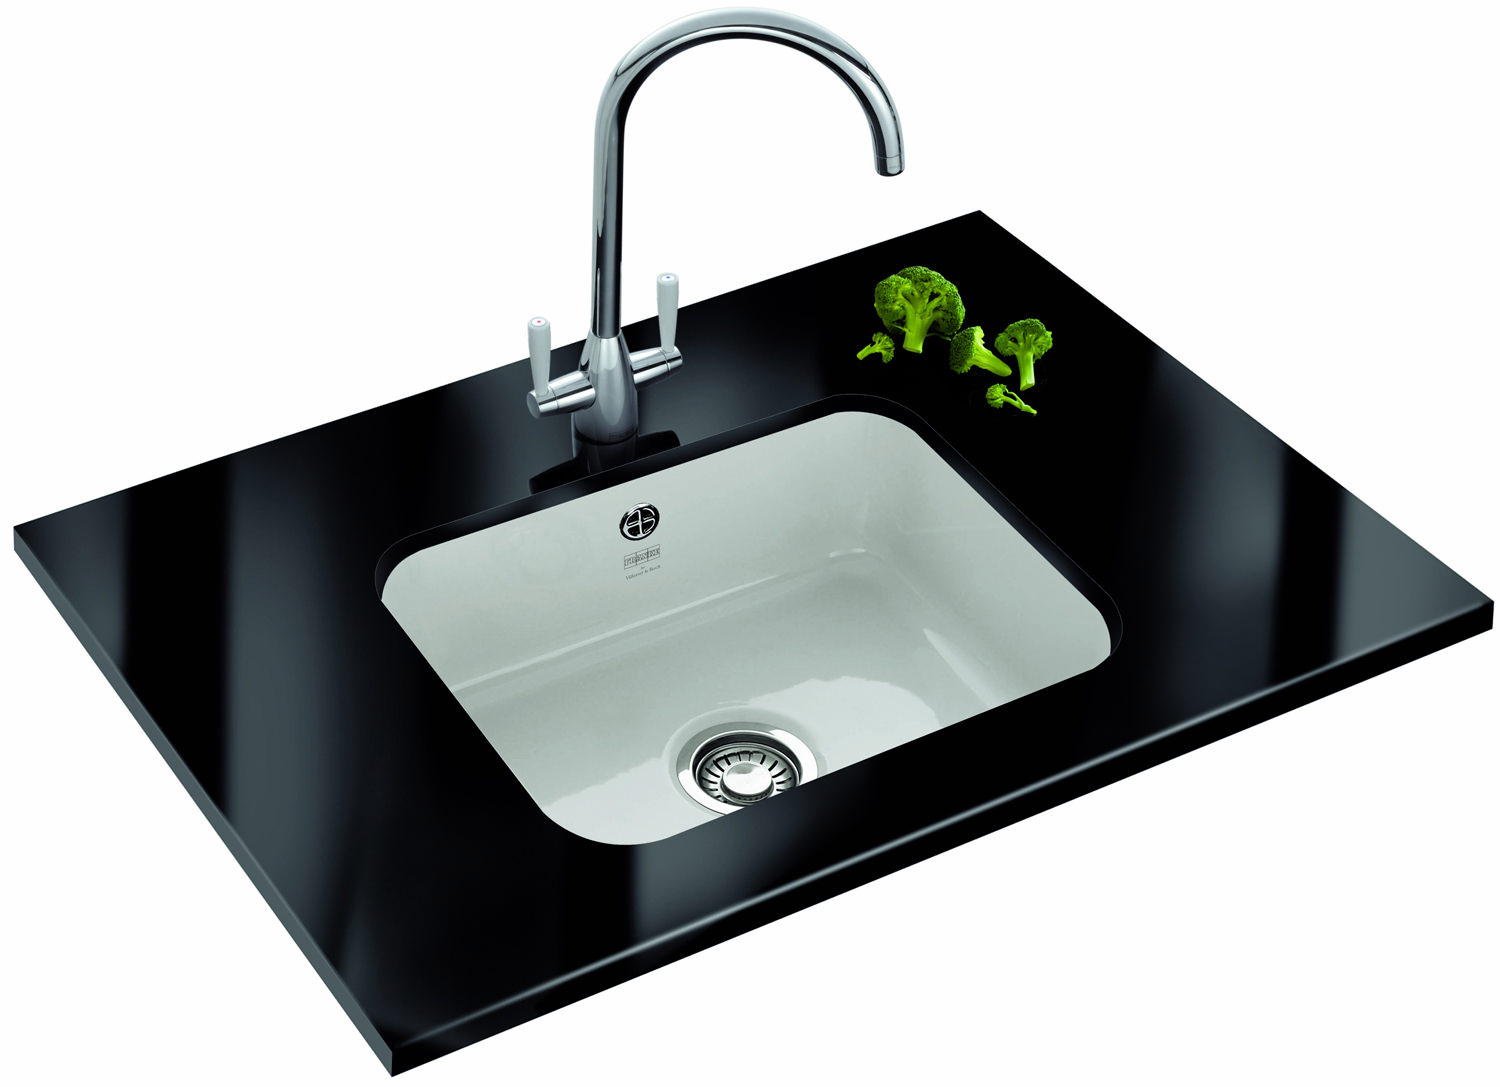 ... of Franke V And B VBK 110 50 Ceramic 1.0 Bowl Undermount Kitchen Sink